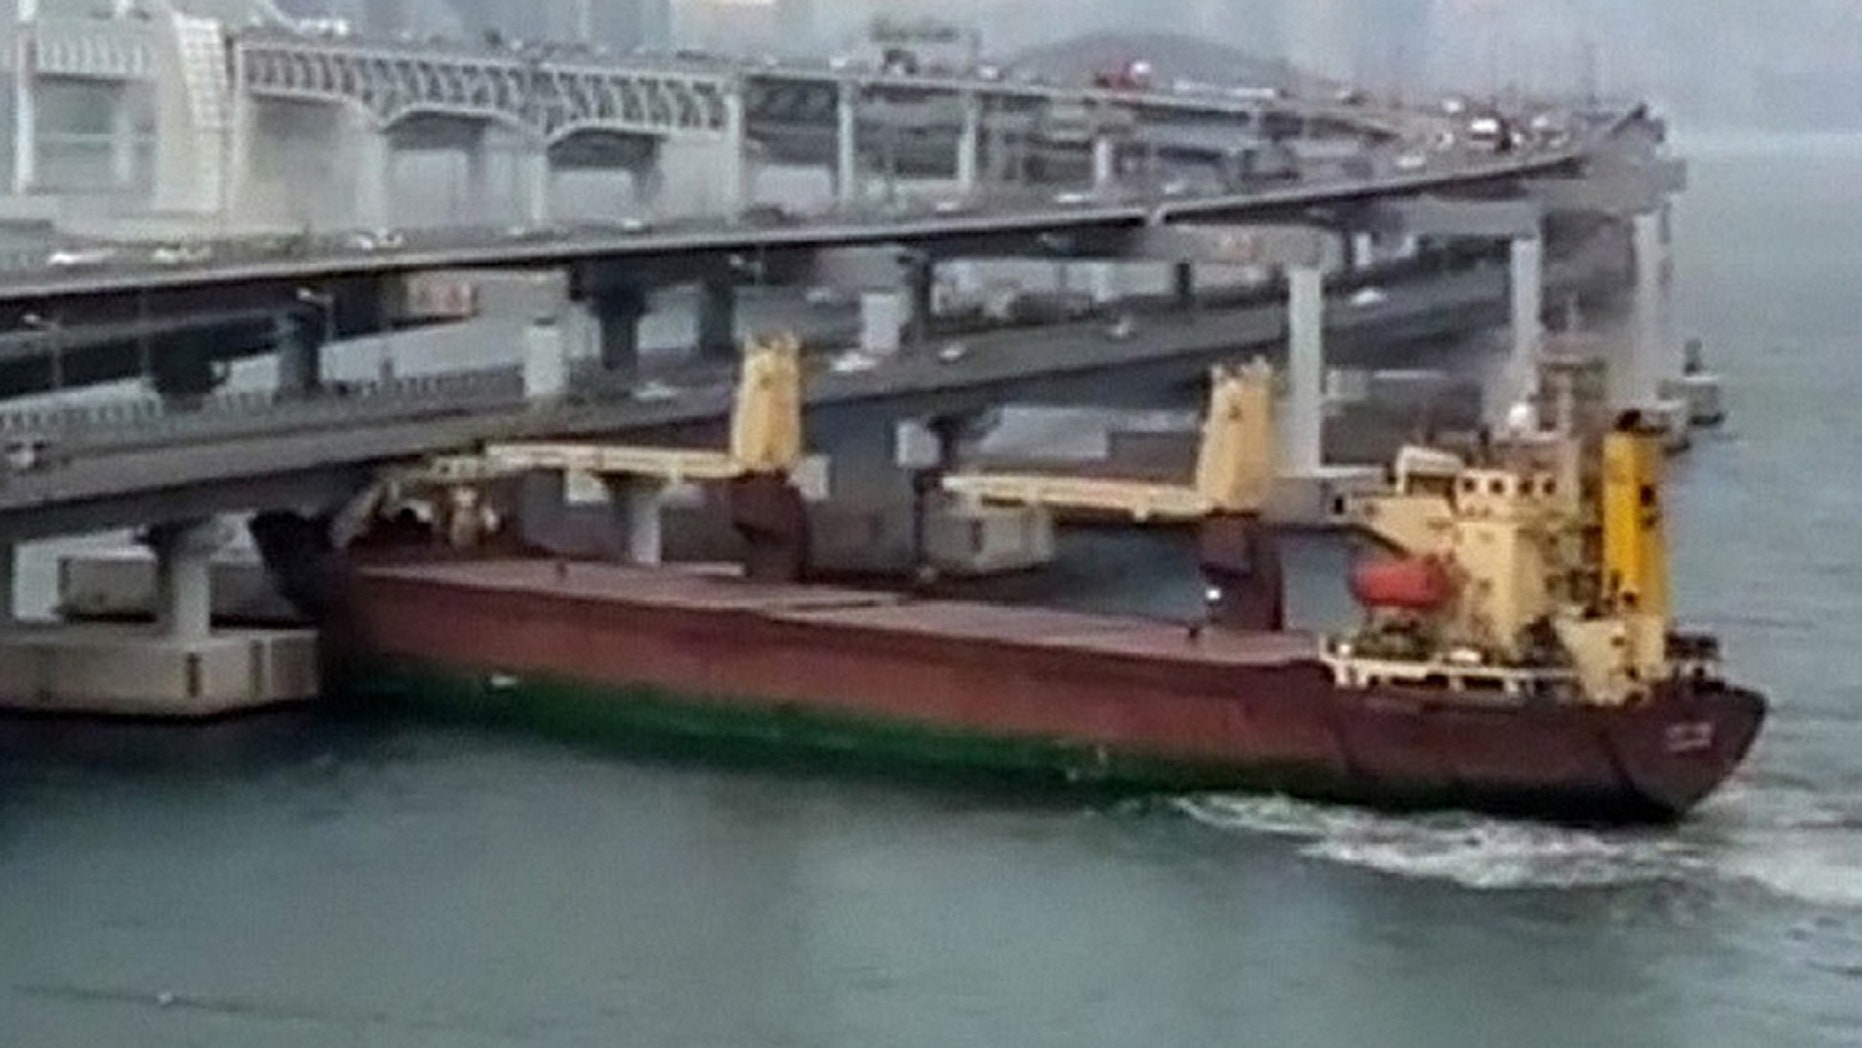 A Russian cargo ship crashed into a bi-level bridge on the coast of South Korea while its captain was drunk